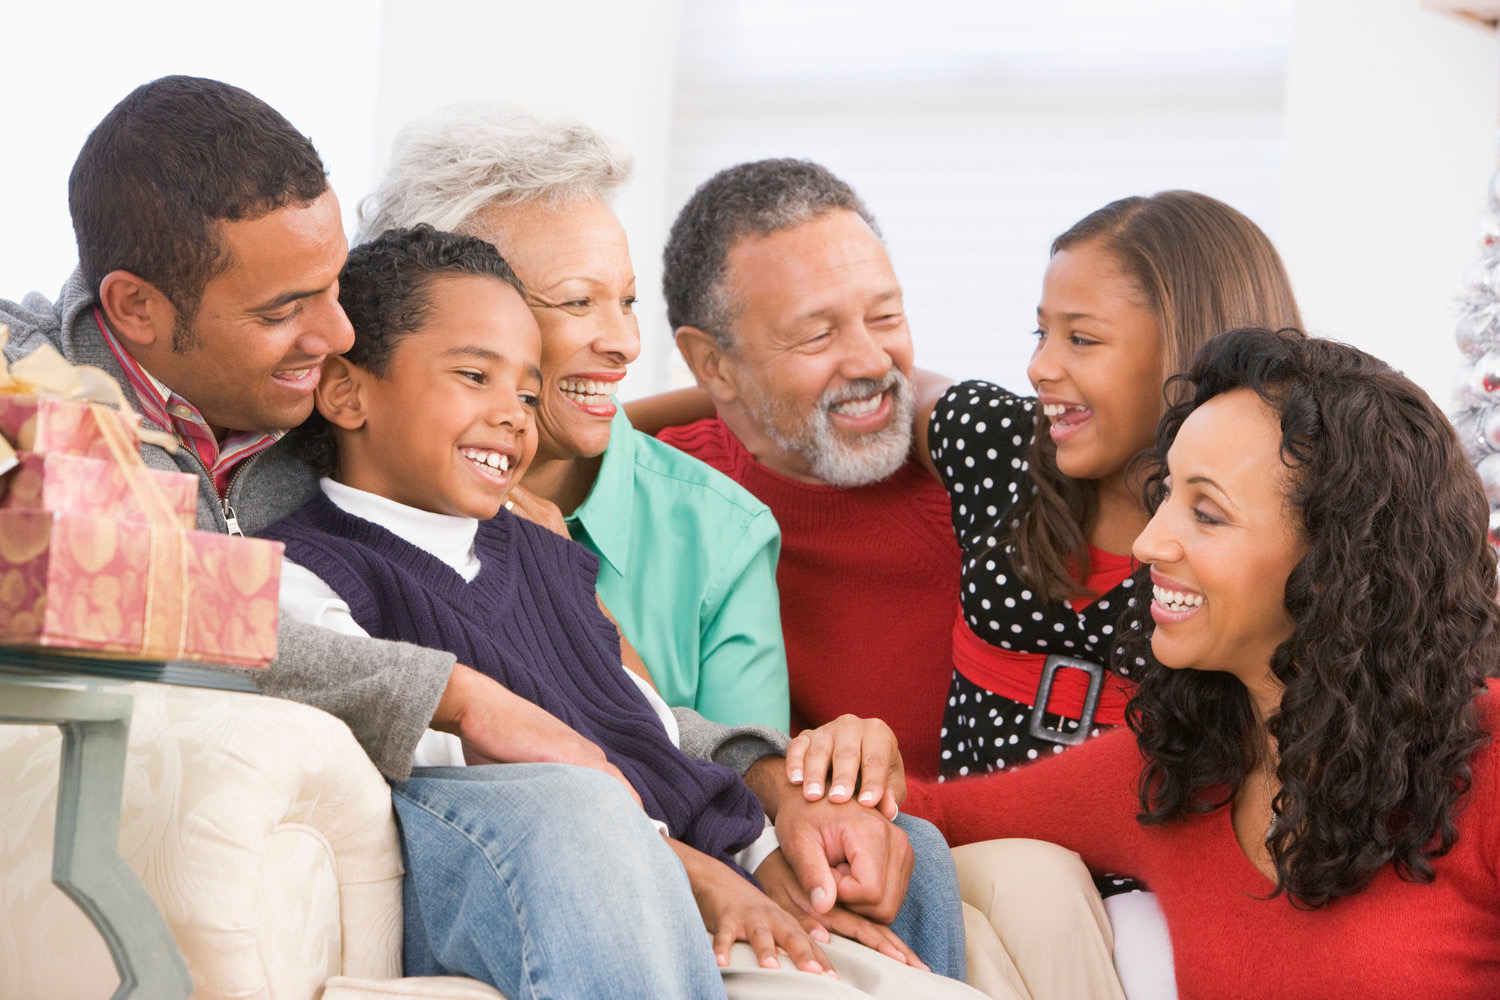 Three generations of a wealthy African-American family smiling together.